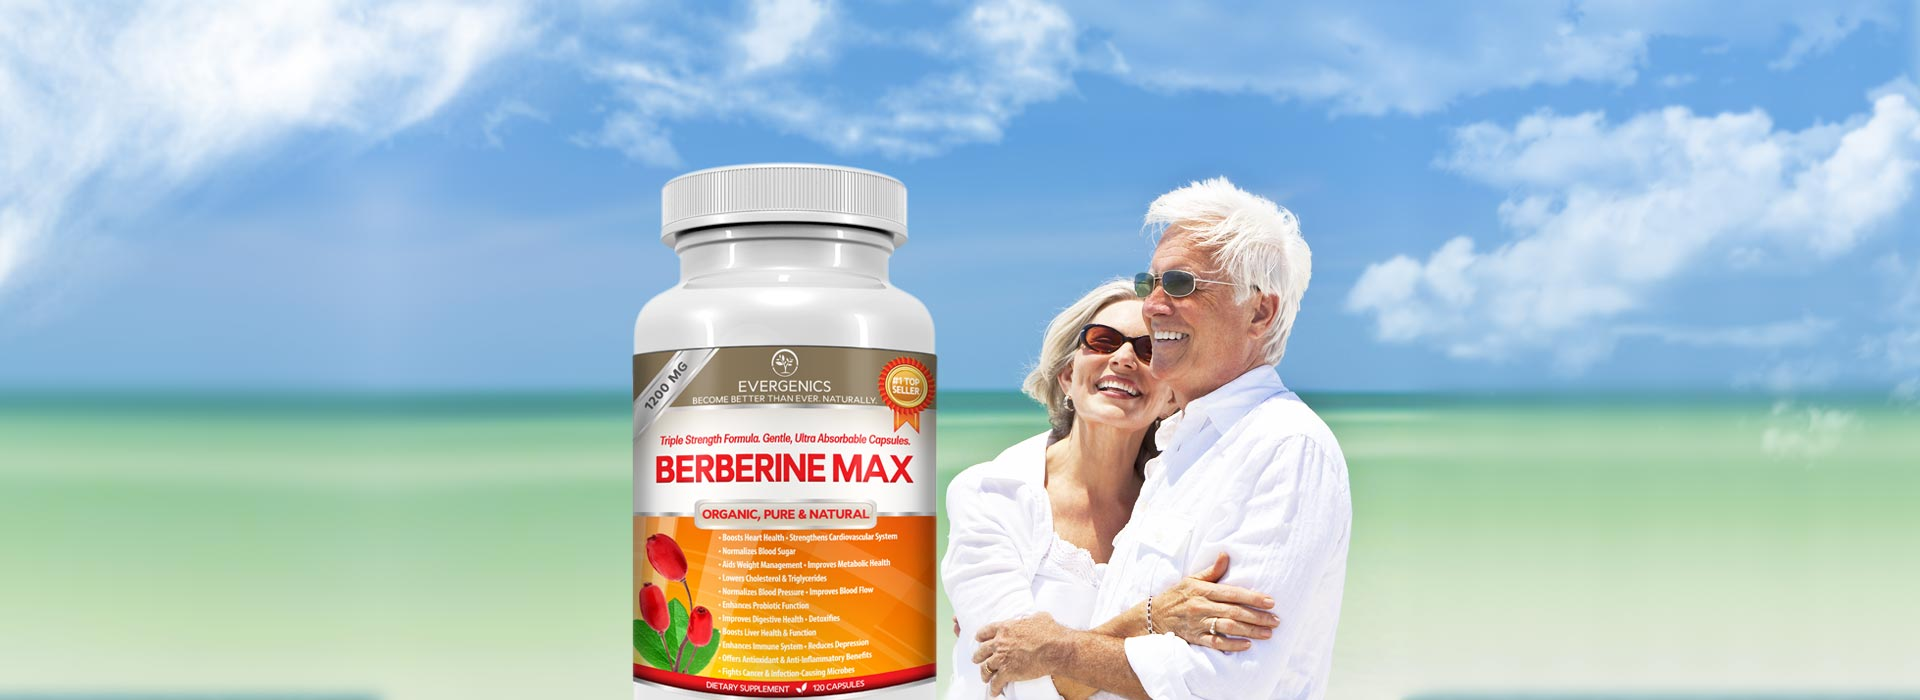 Berberine Max HCl Supplement for Improved Health in Nearly All Areas